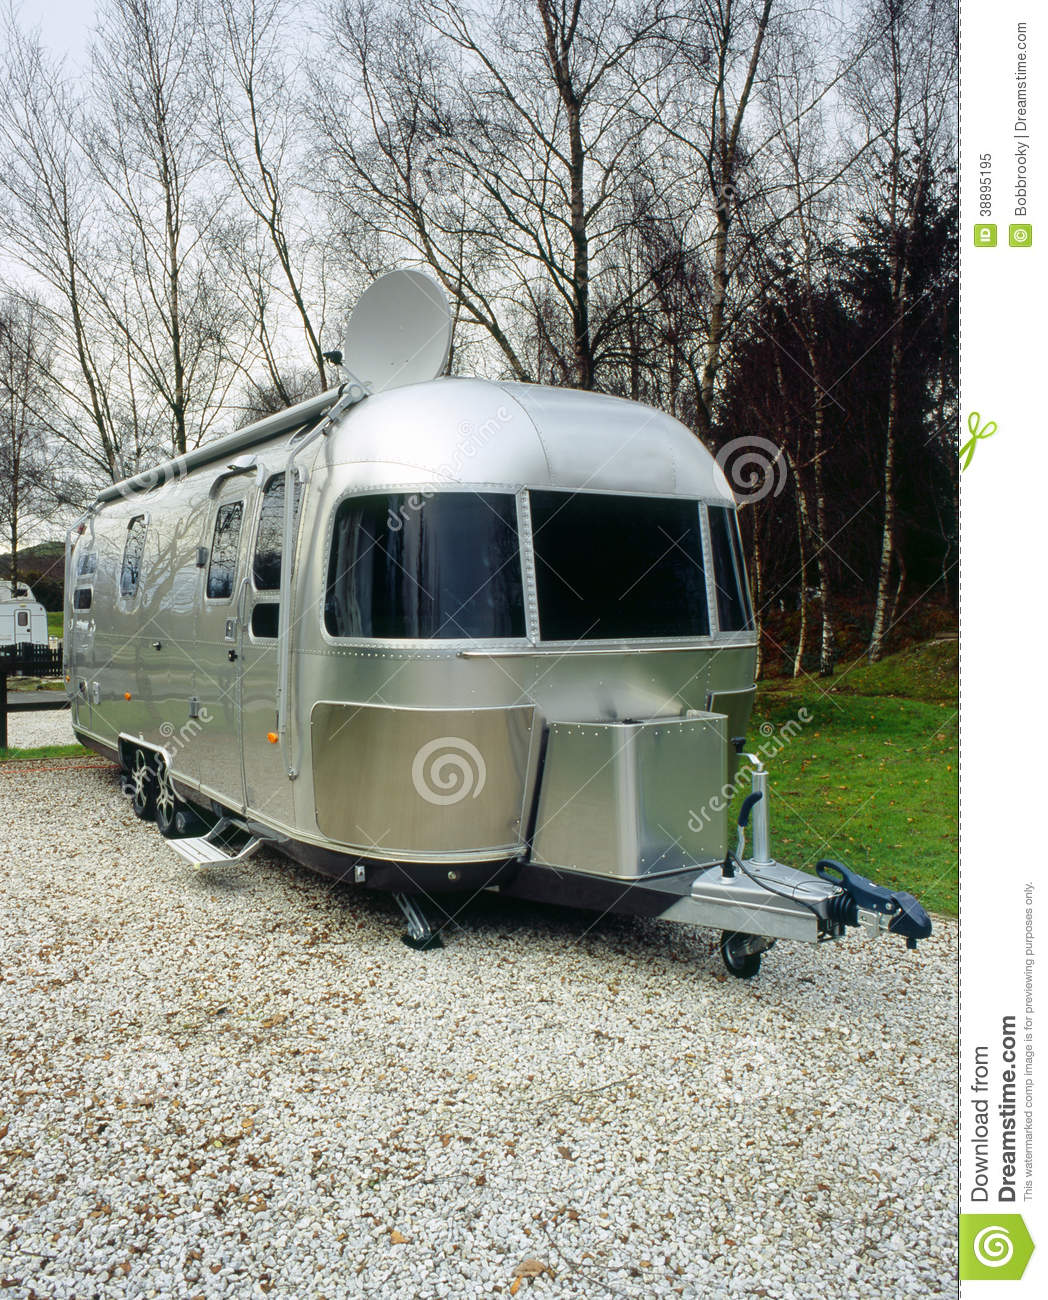 Retro american camping trailer stock image image of for Housse tyvek camping car